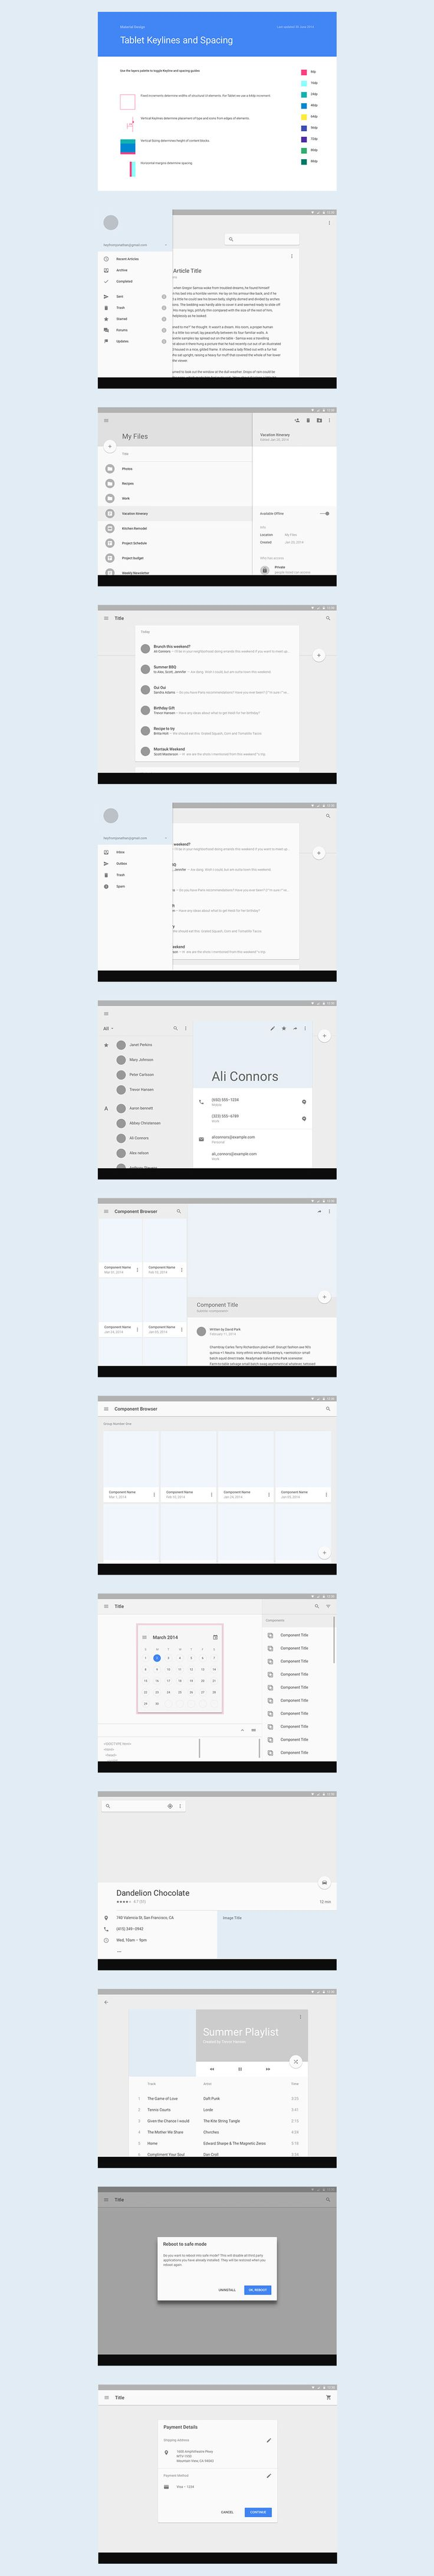 Android L Tablet UI Template (.sketch)